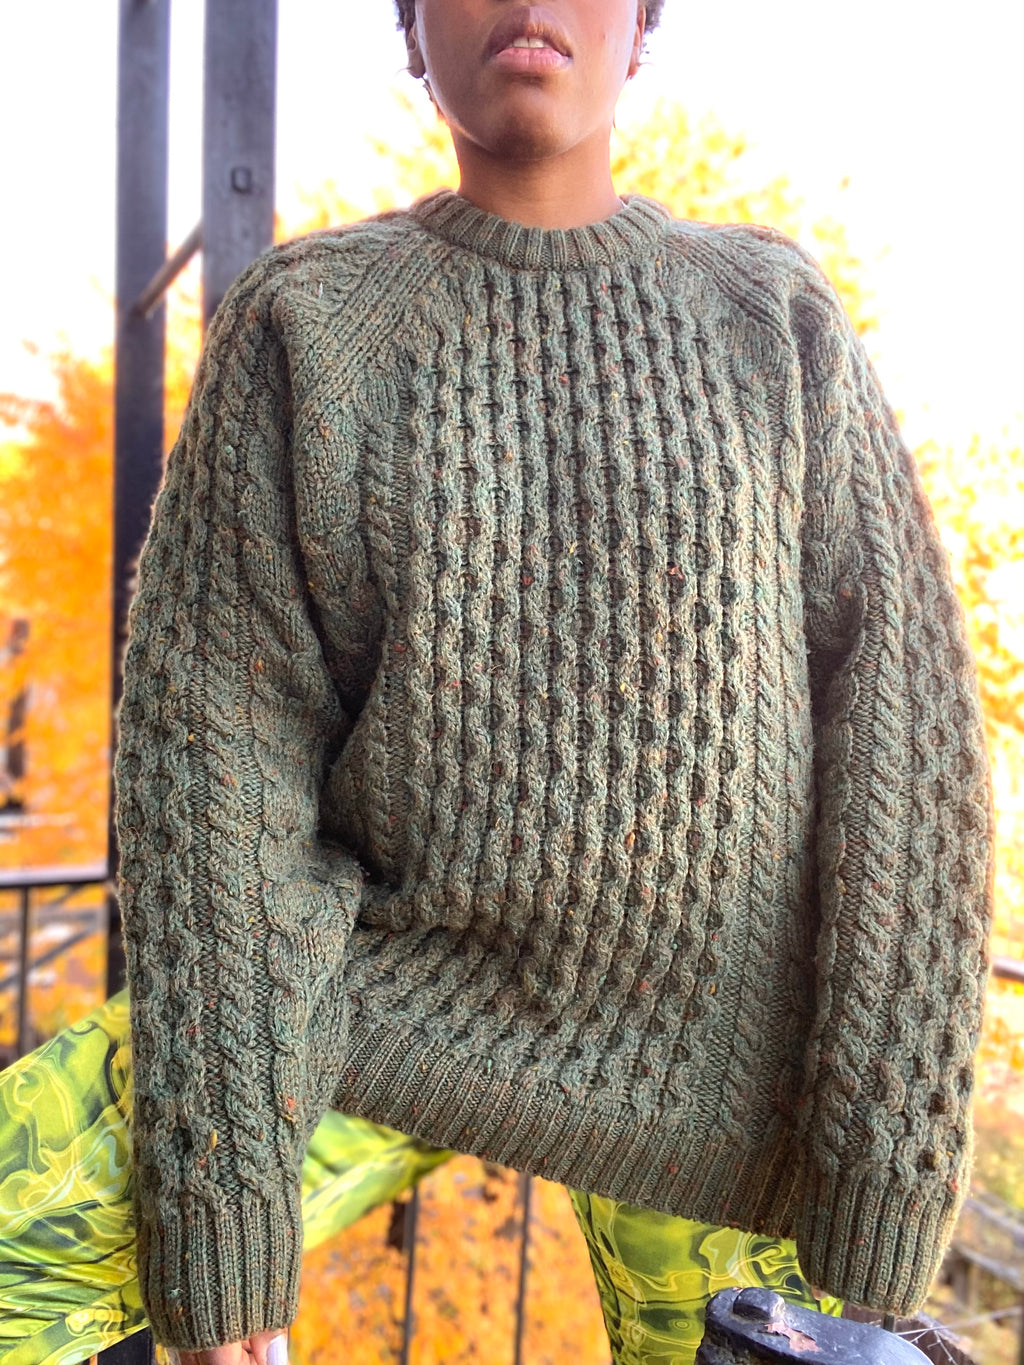 Green Cable Knit Wool Sweater